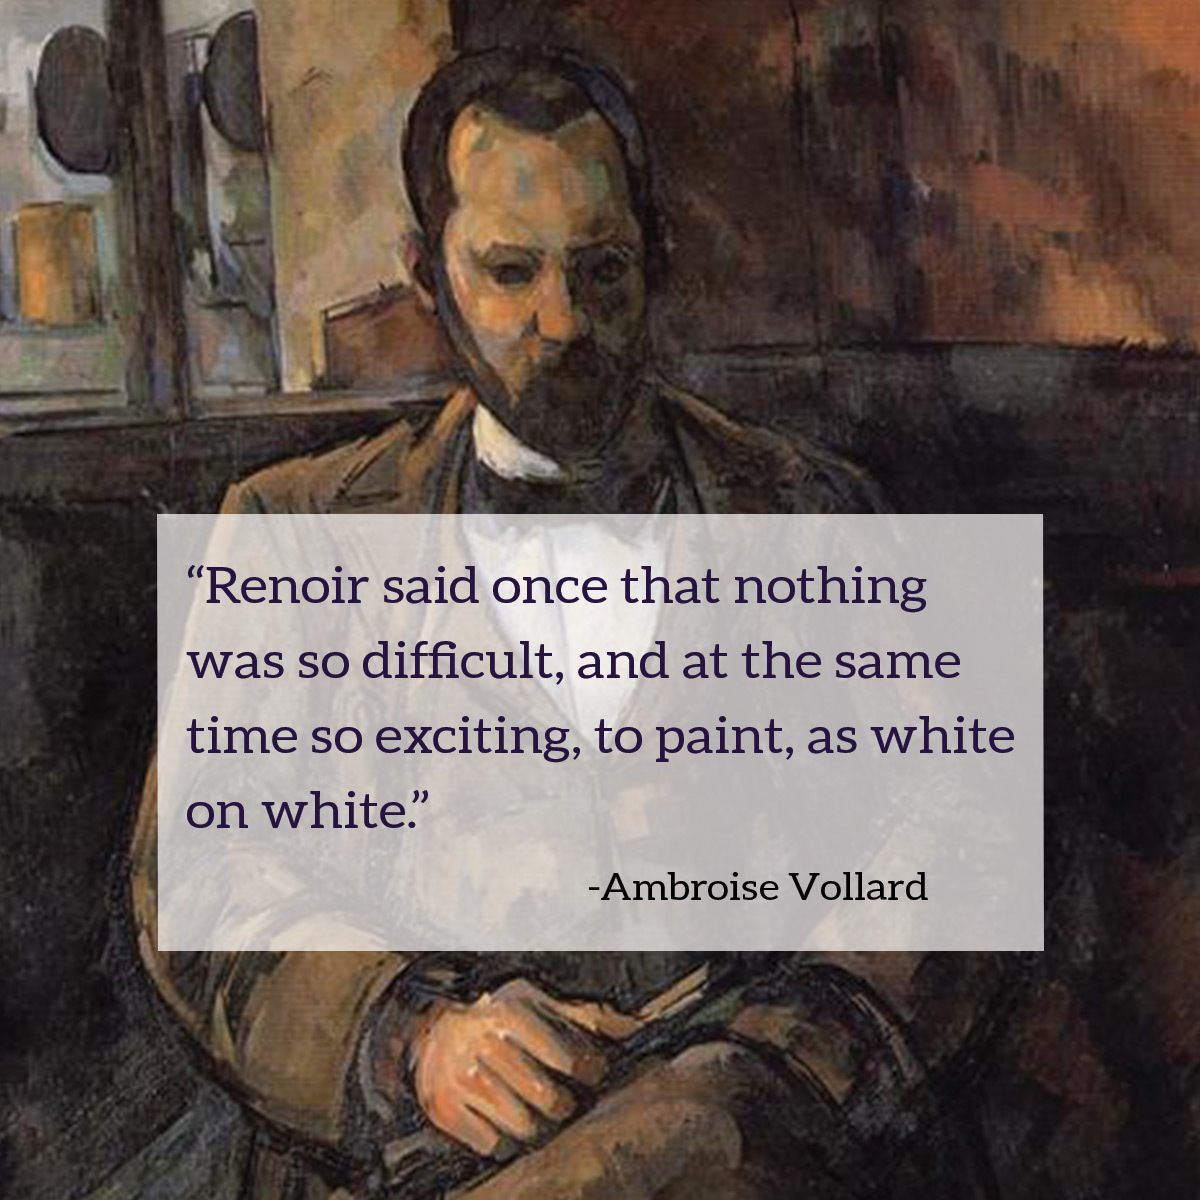 """Renoir said once that nothing was so difficult, and at the same time so exciting, to paint, as white on white."" - Ambroise Vollard"